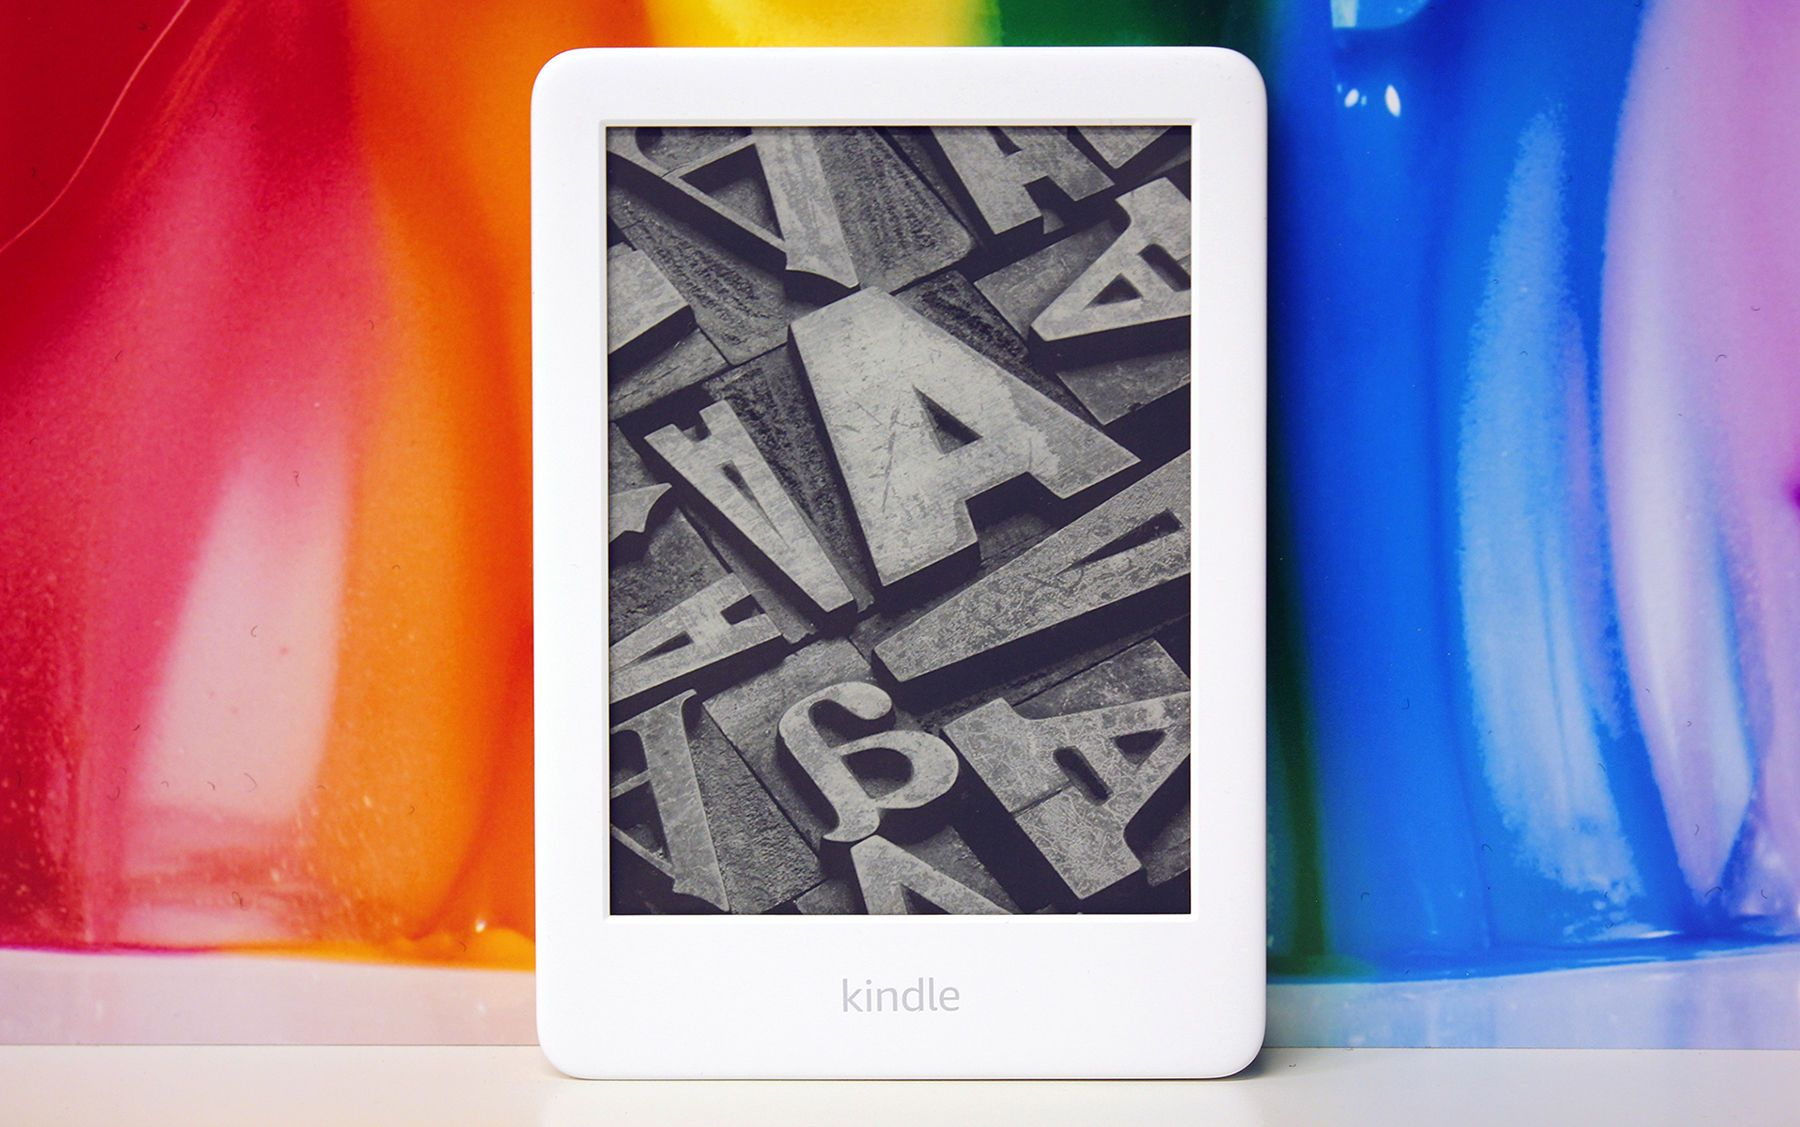 Amazon has a sale on Kindles right now